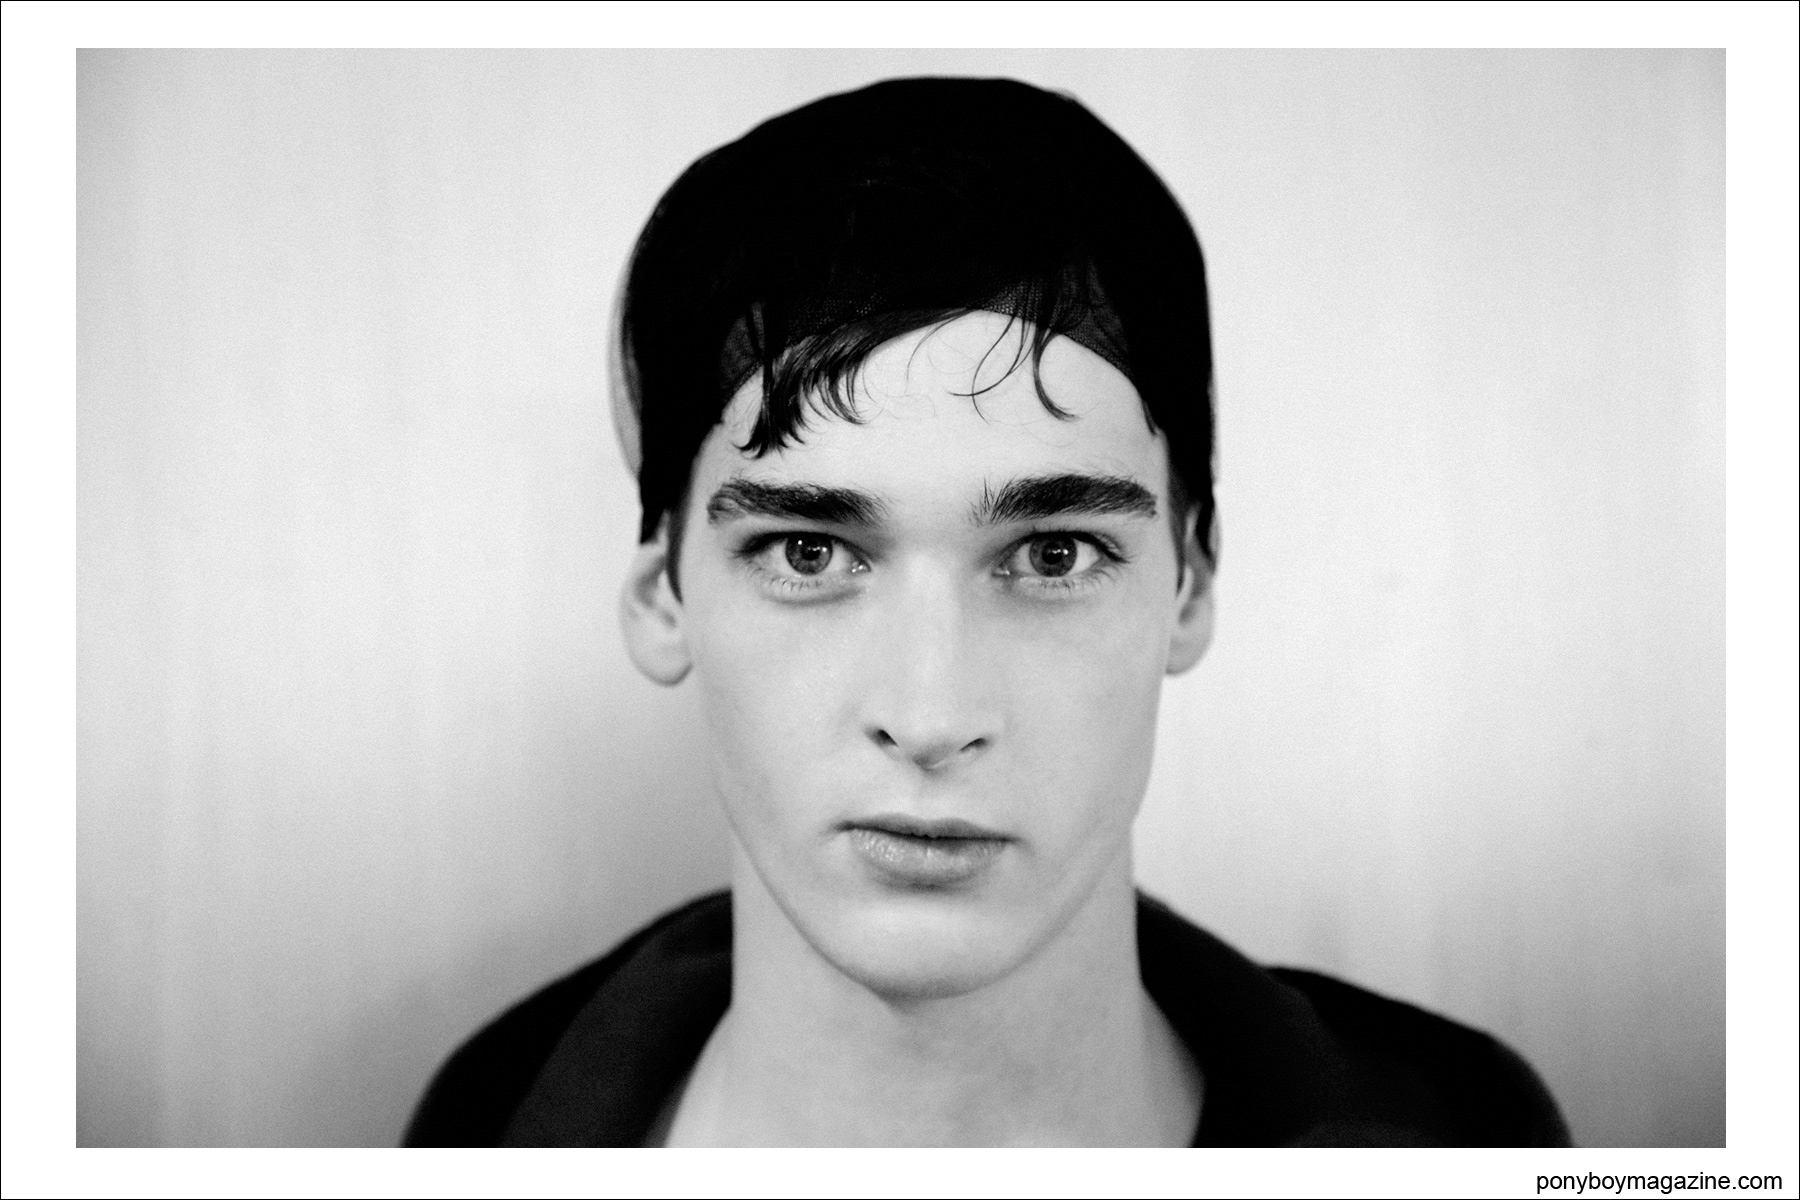 A male model snapped backstage by Alexander Thompson for Ponyboy Magazine at Tim Coppens S/S15.